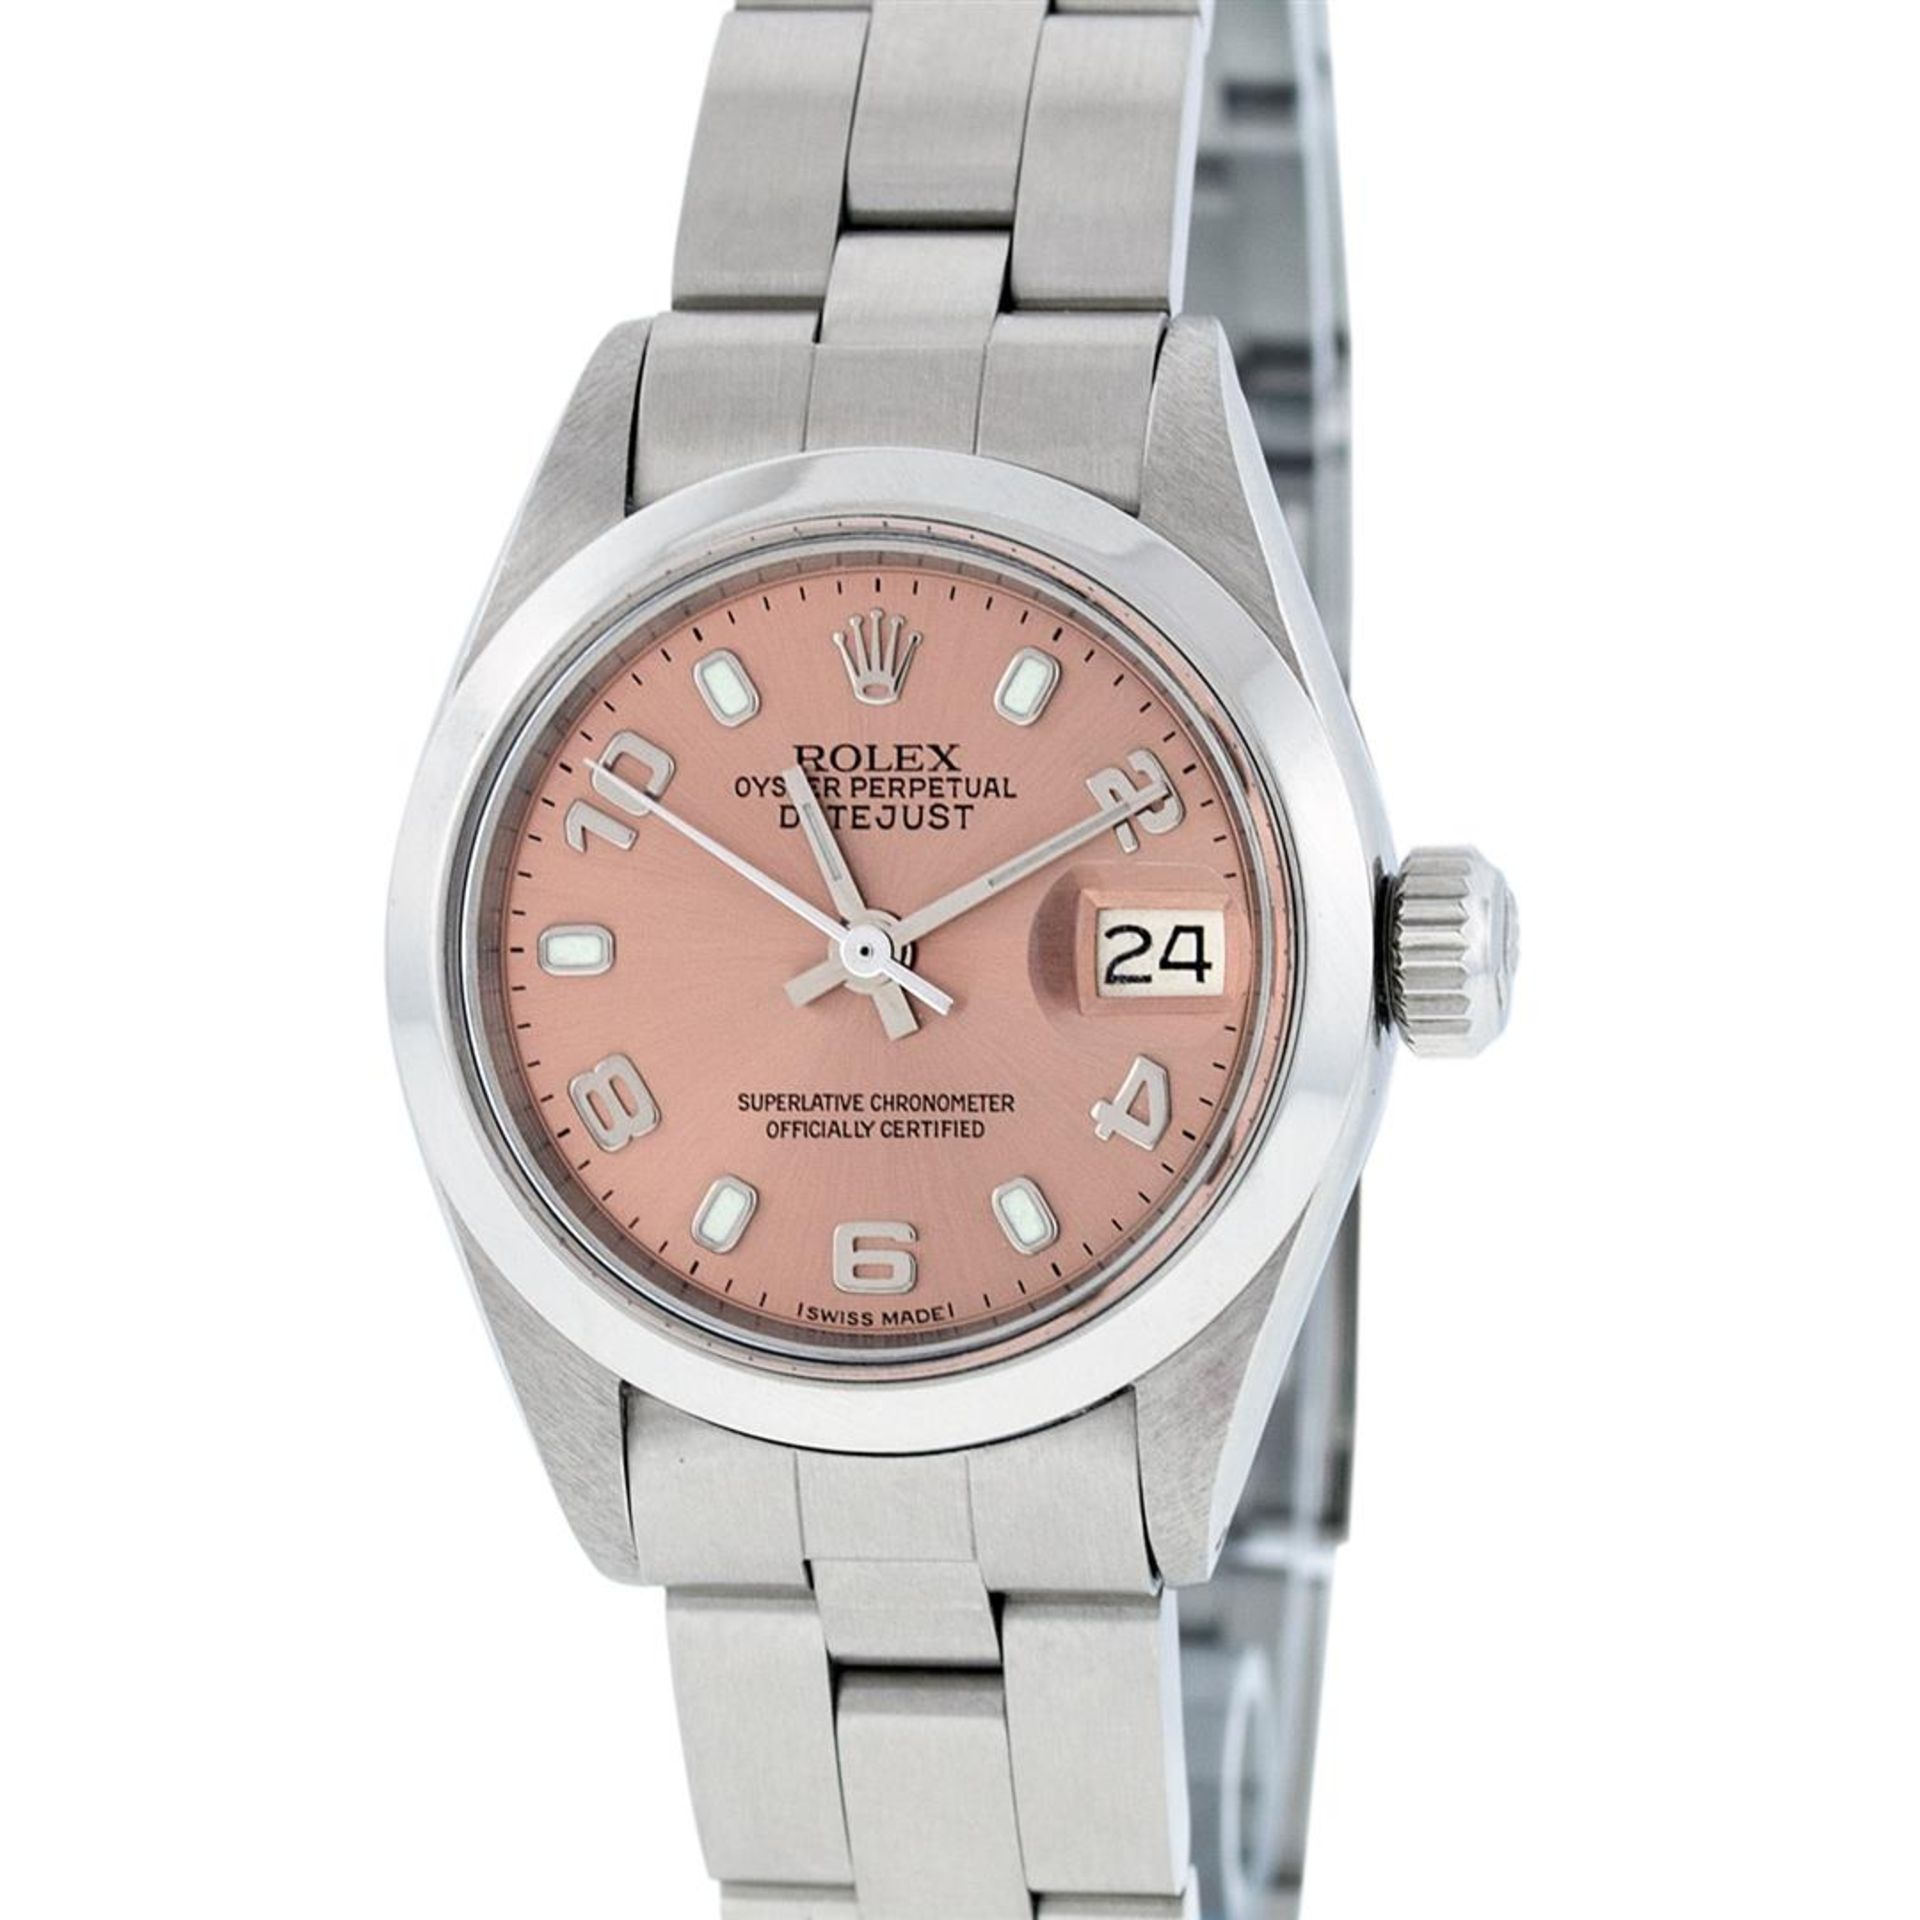 Rolex Ladies Stainless Steel Salmon Dial 26MM Oyster Band Datejust Wristwatch - Image 2 of 9